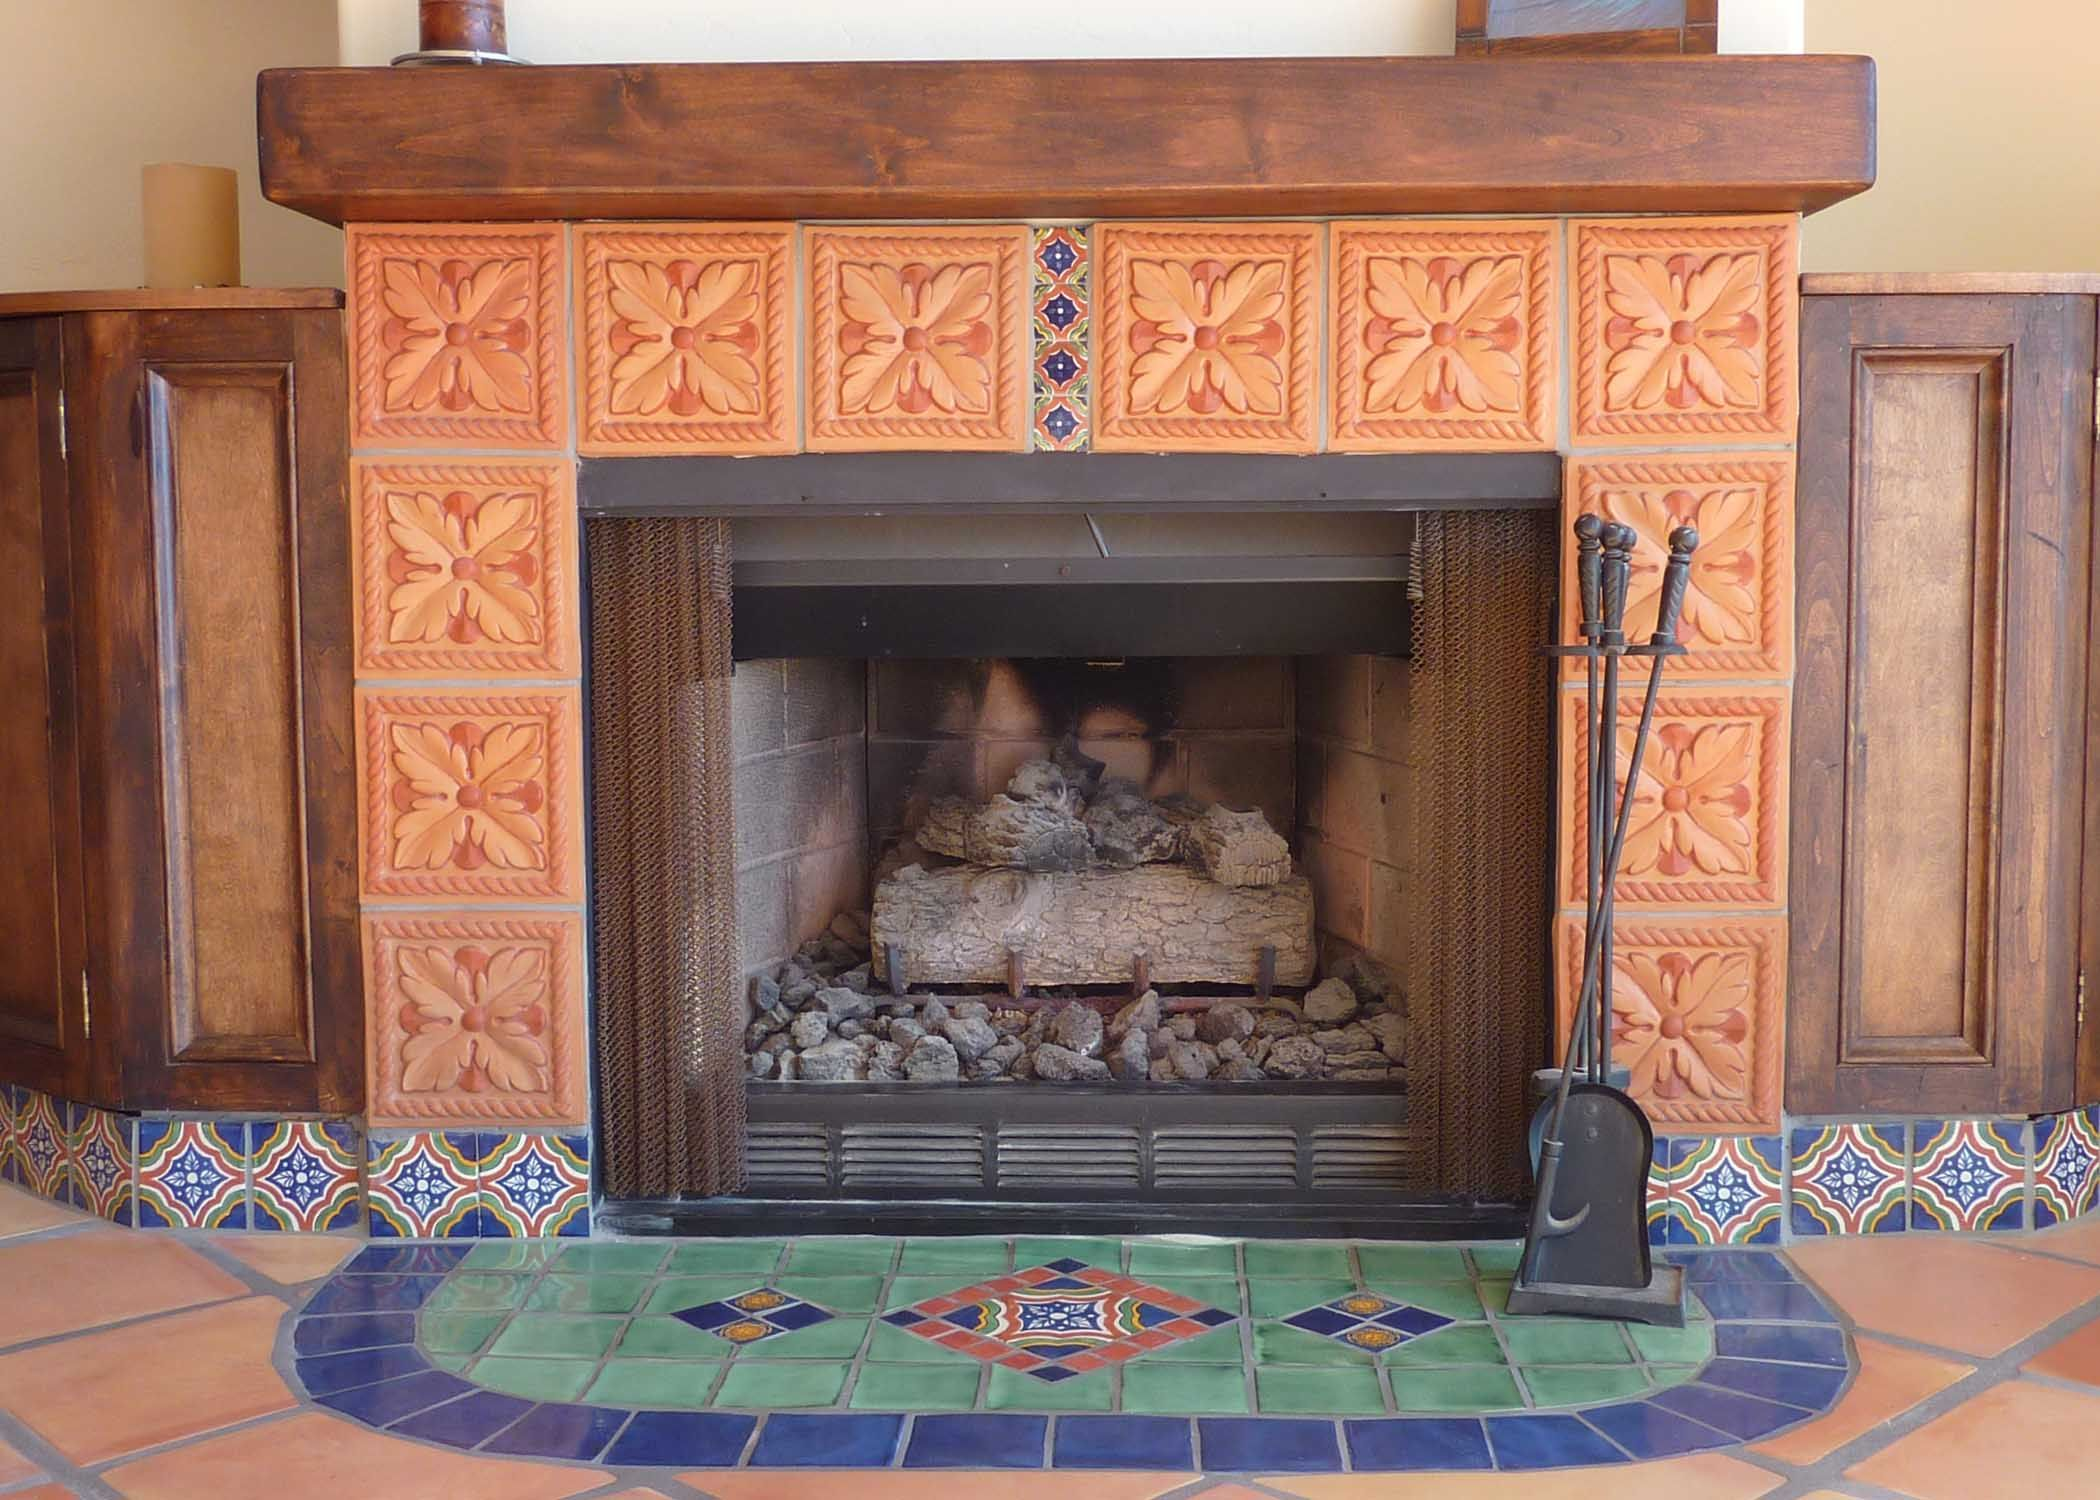 tasty tile fireplace designs. One interesting fireplace tile design idea that will totally transform the  look of your room in a rather unexpected way is to choose really bright Fireplace and hearth using Mexican tiles by kristiblackdesigns com